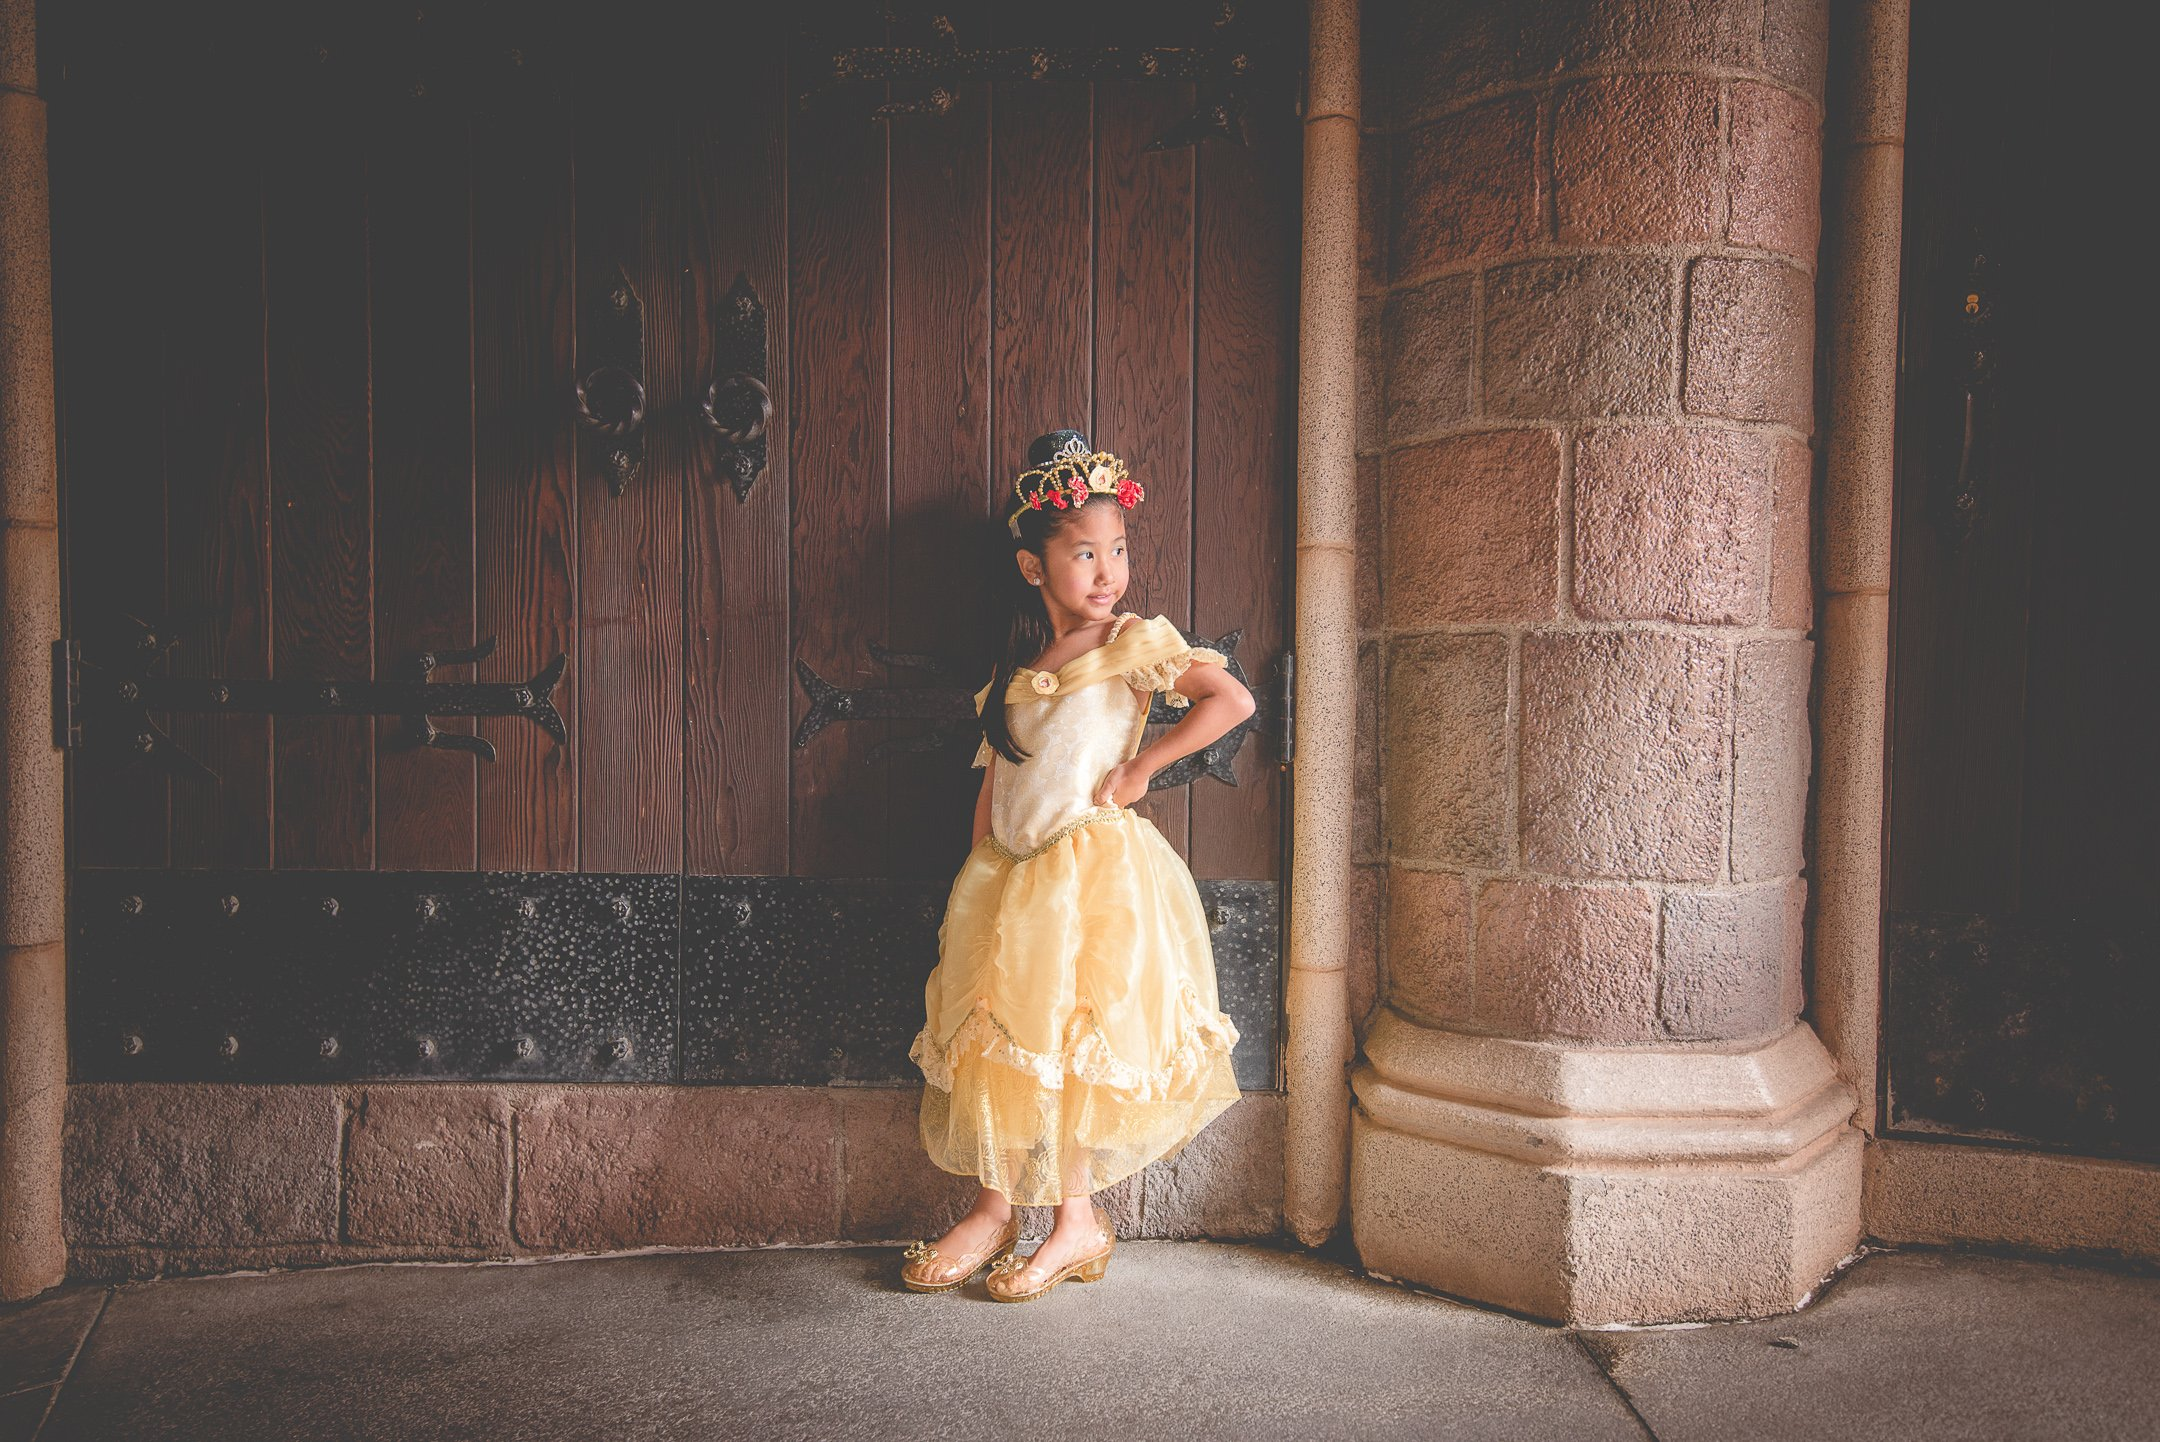 Girl with princess dress in a Disney hallway